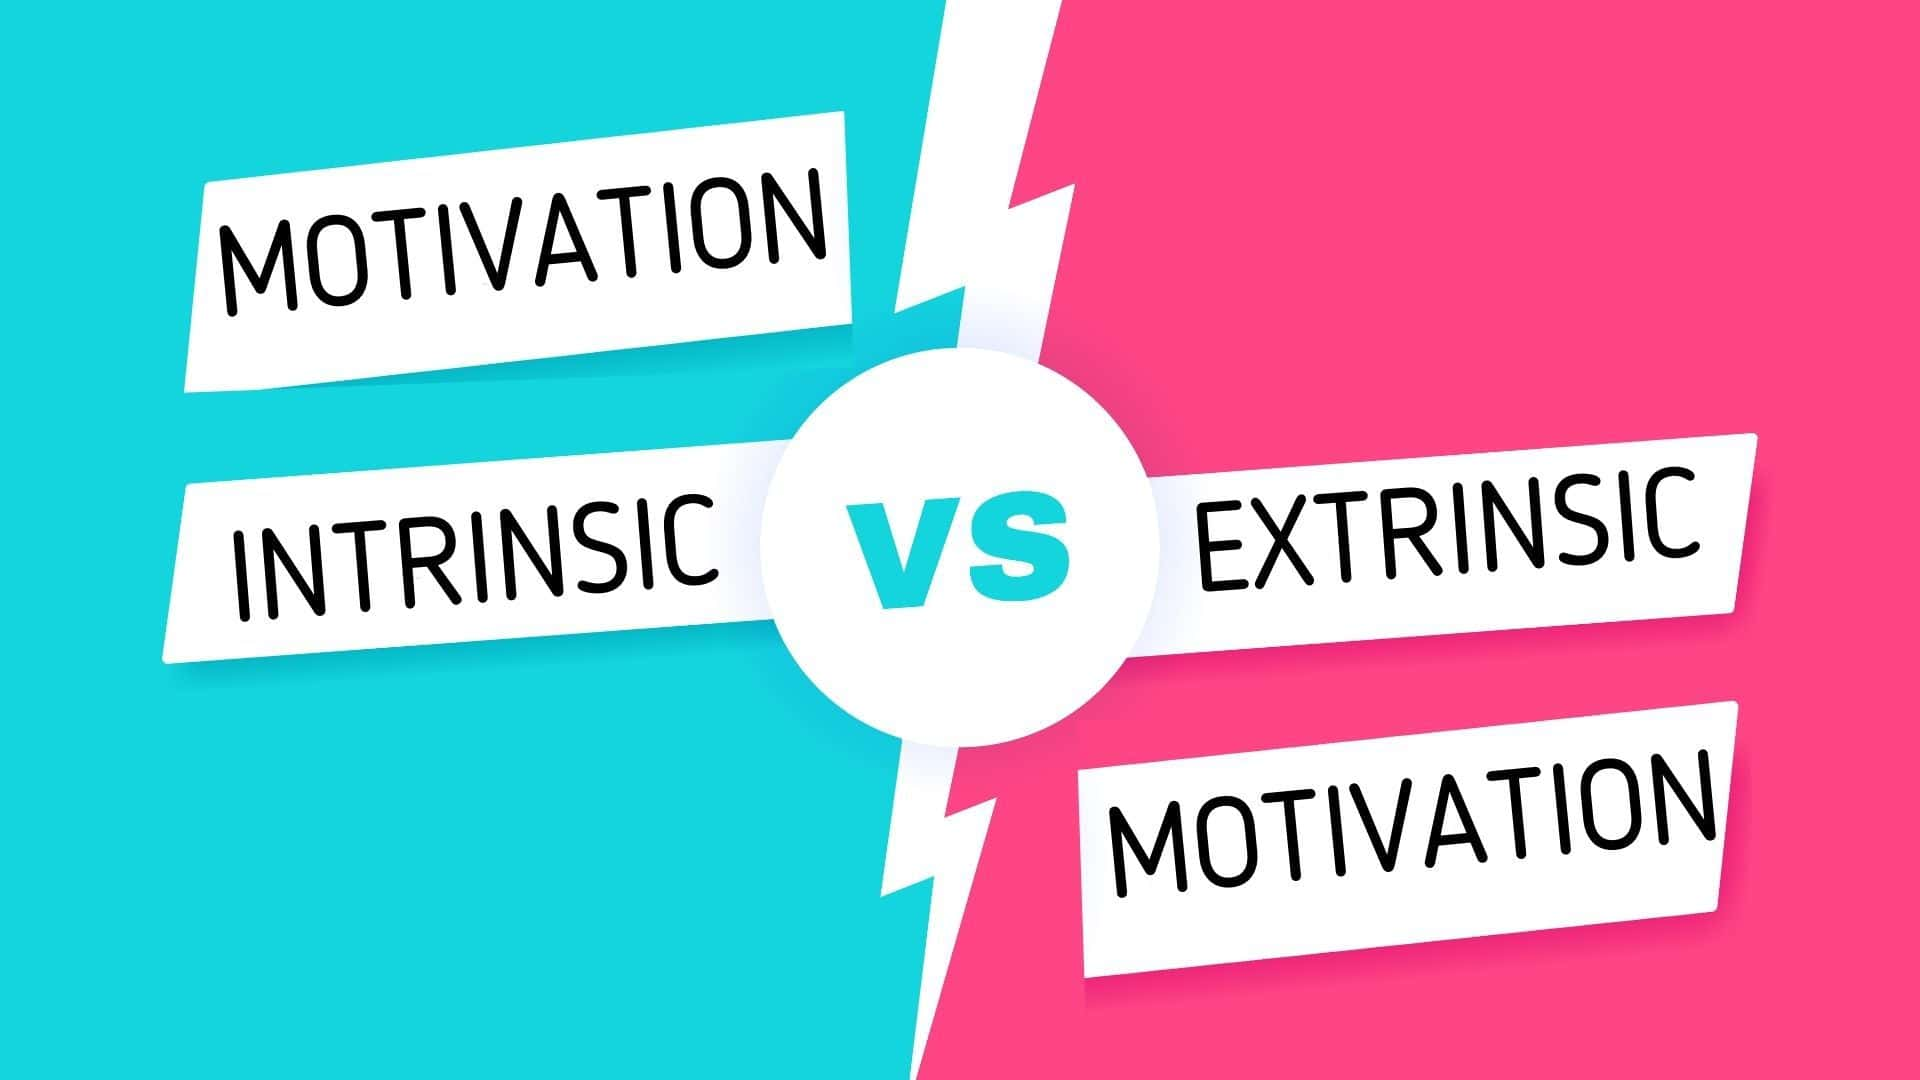 Difference between intrinsic and extrinsic motivation